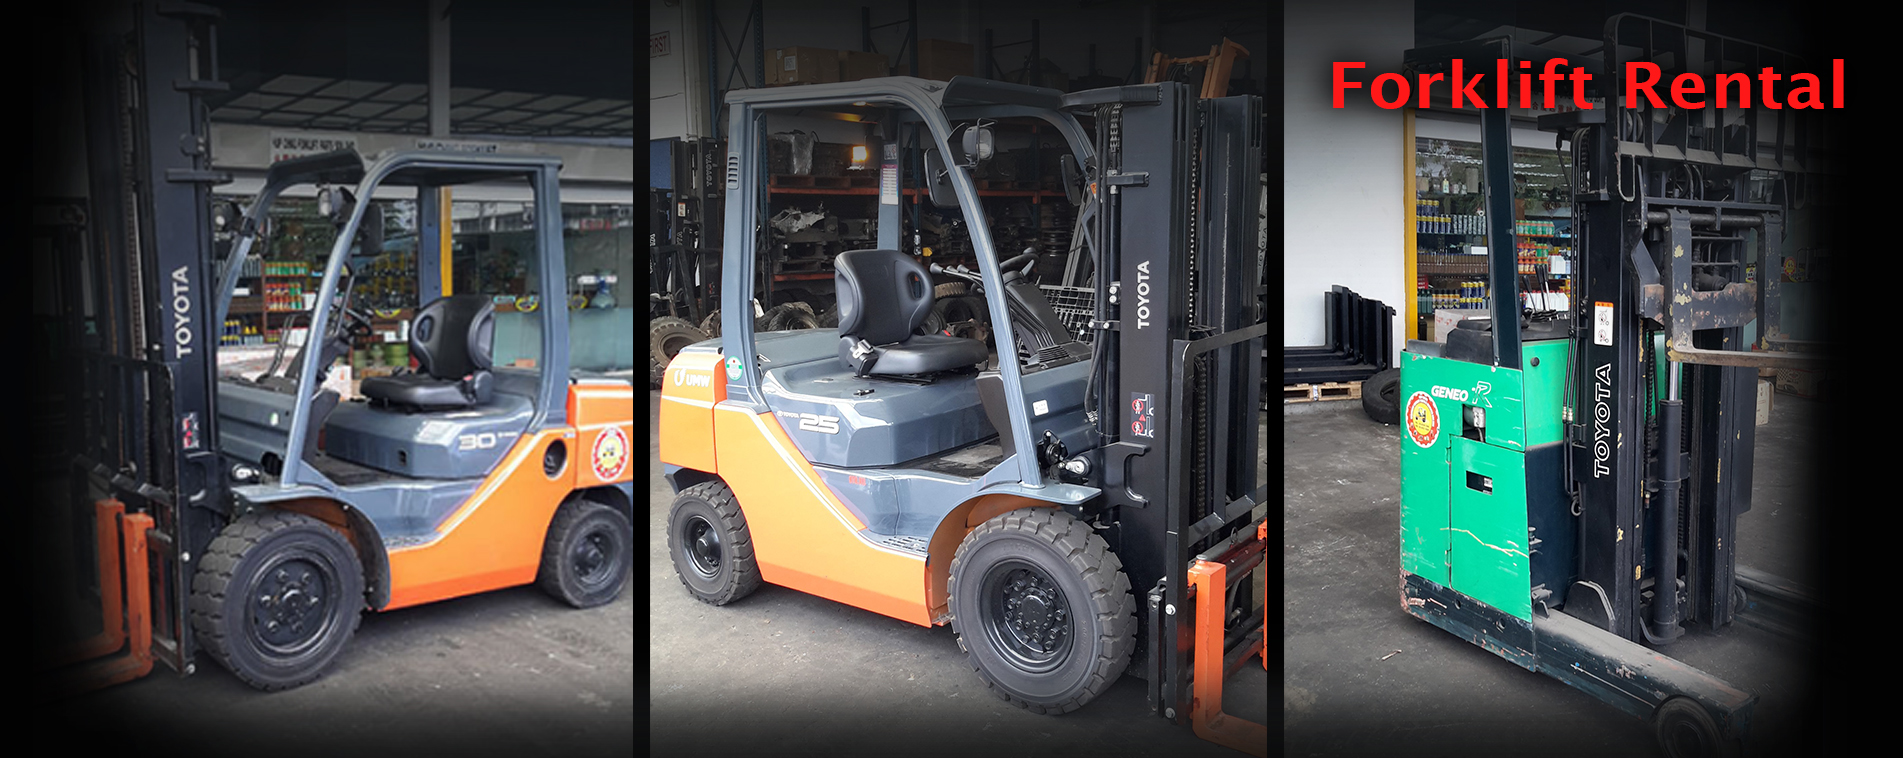 HUP CHING FORKLIFT